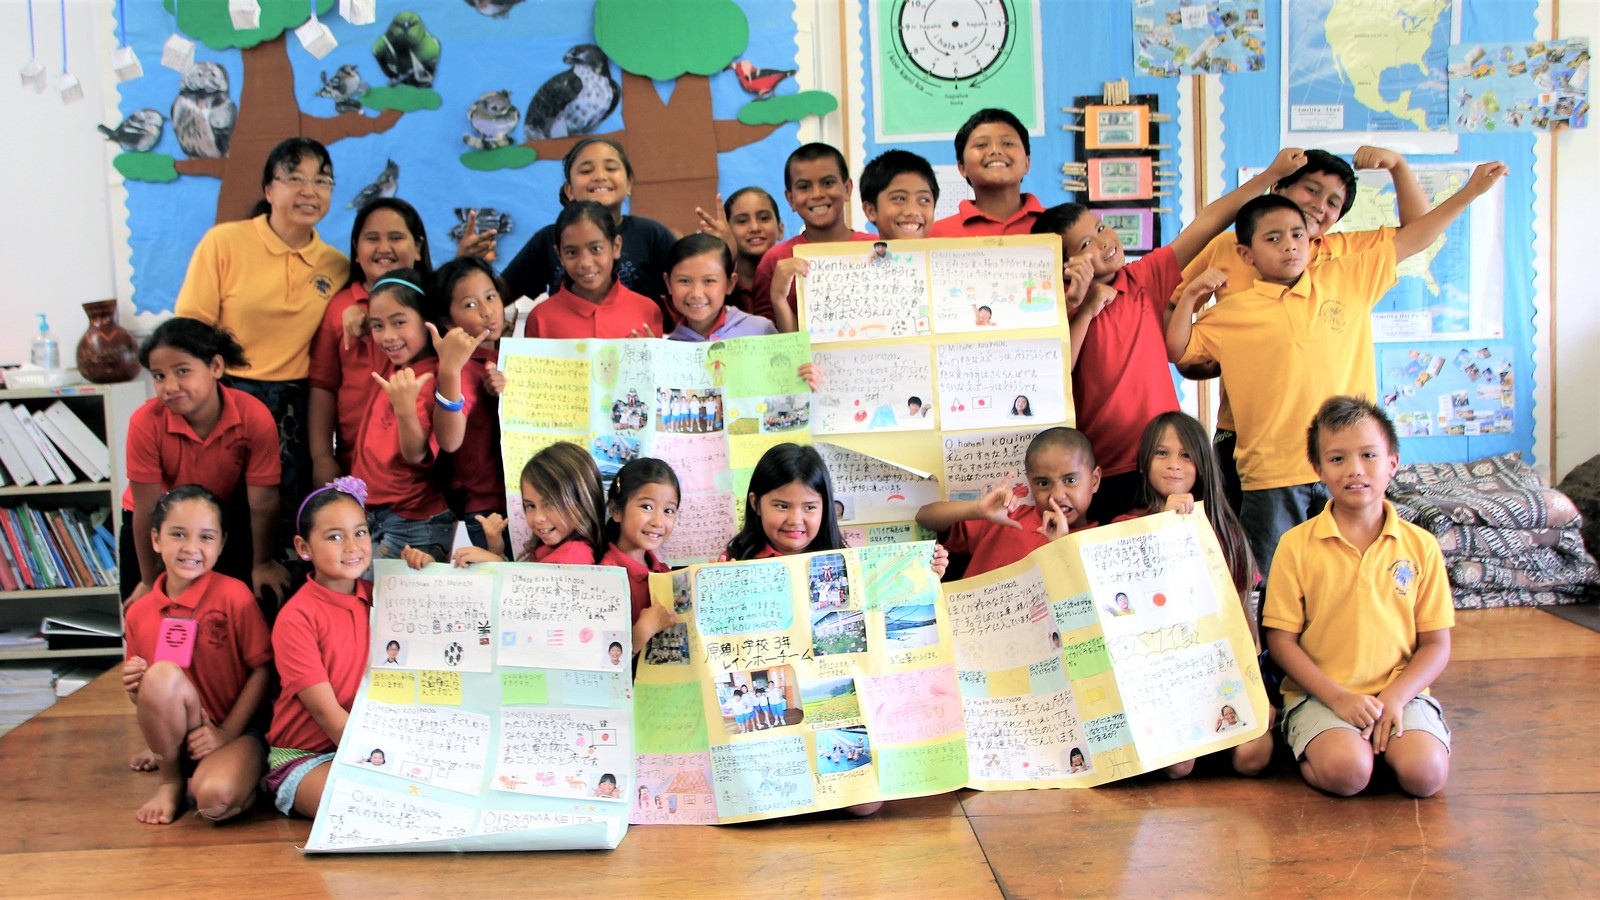 Photo of class, some students holding up large posters of Japanese language lessons.